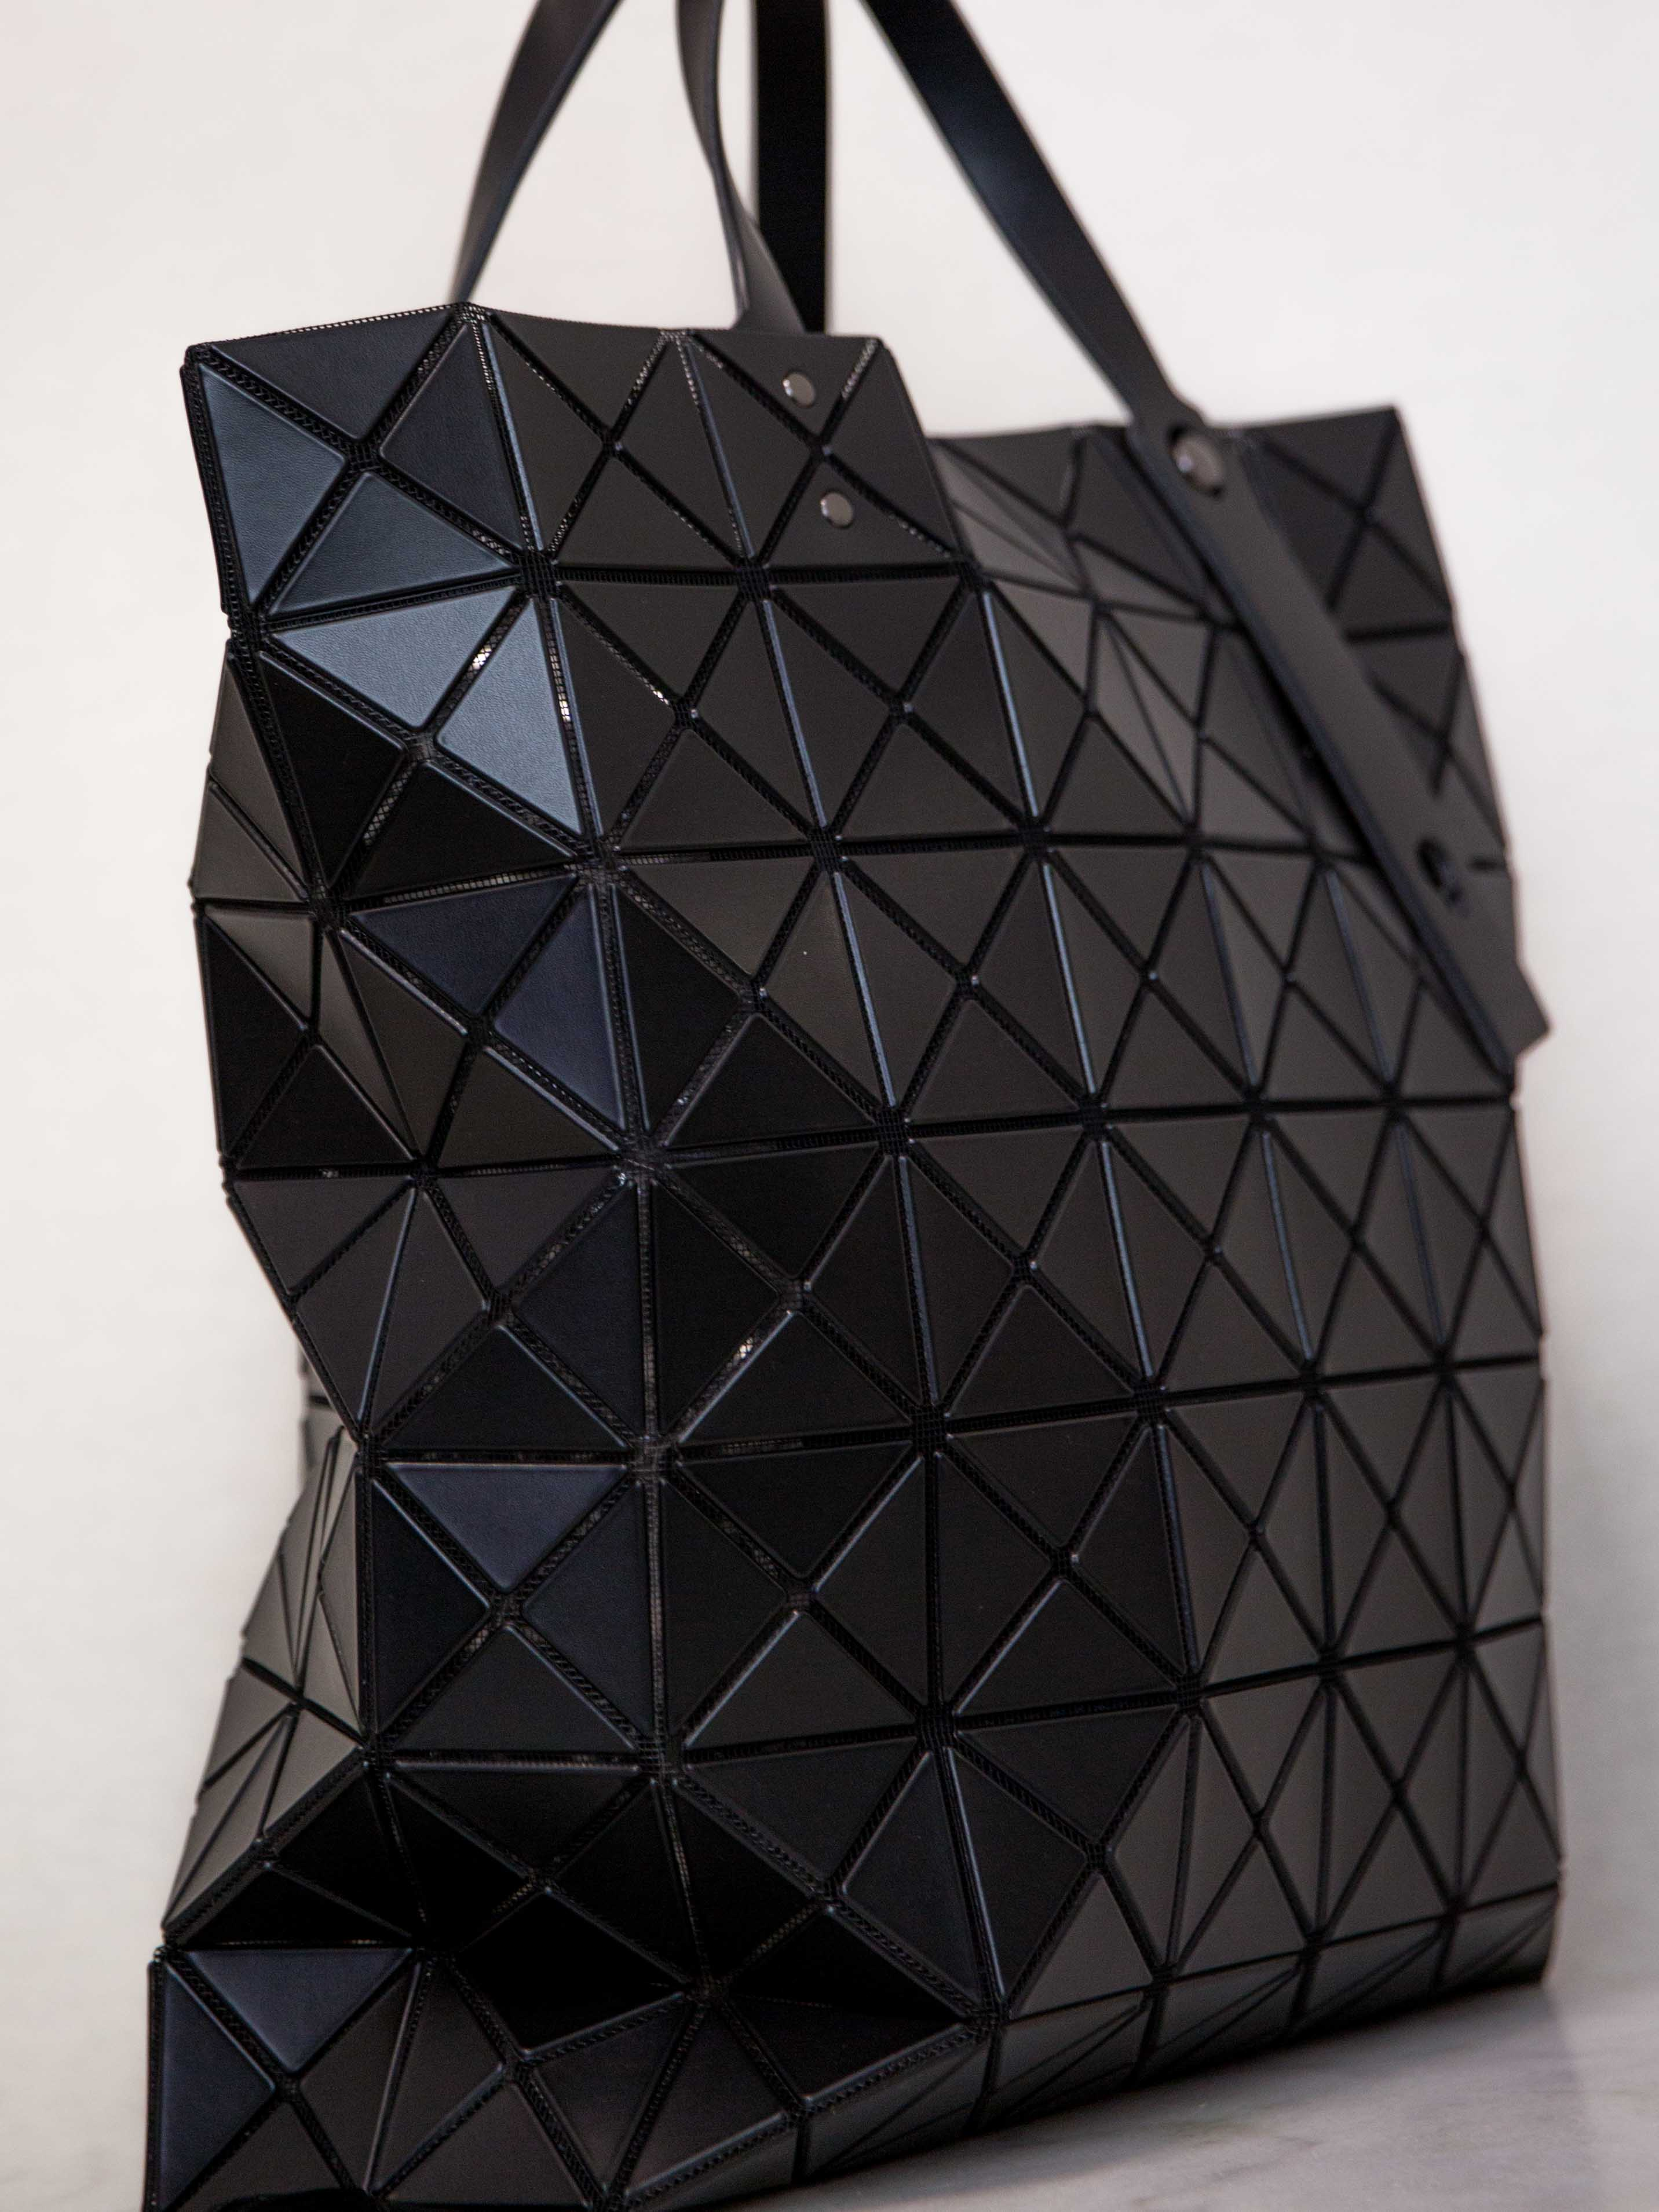 ... BAO BAO ISSEY MIYAKE Lucent Matte Oversized Tote Bag - Black ... 7eee5498e9b1d